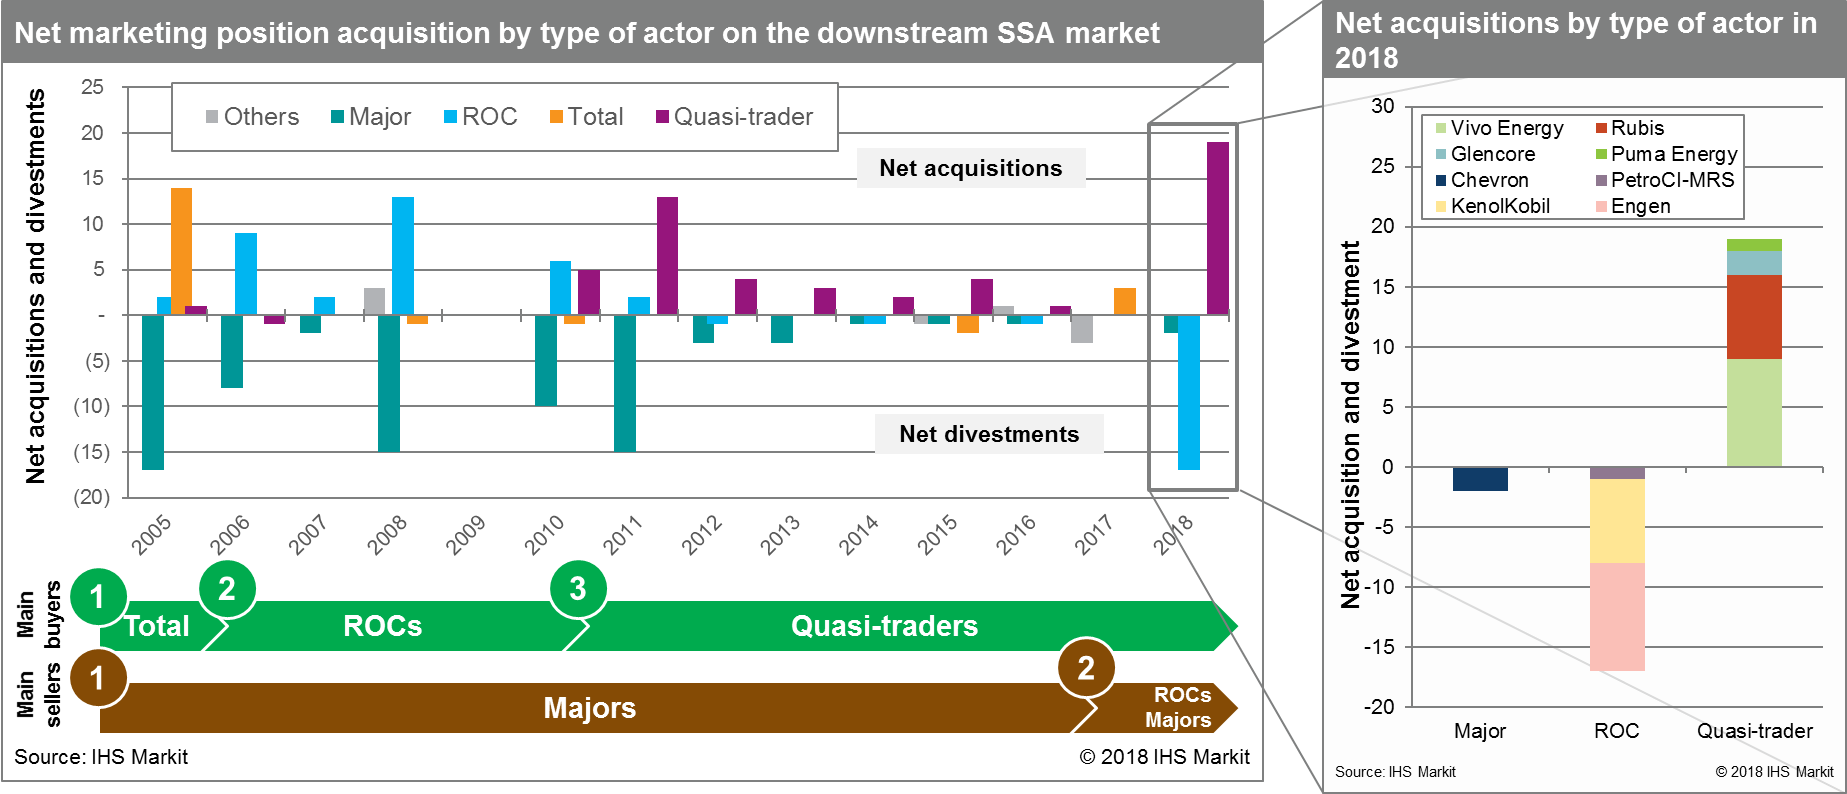 Into Africa: What is the outlook for M&A activity in sub-Saharan